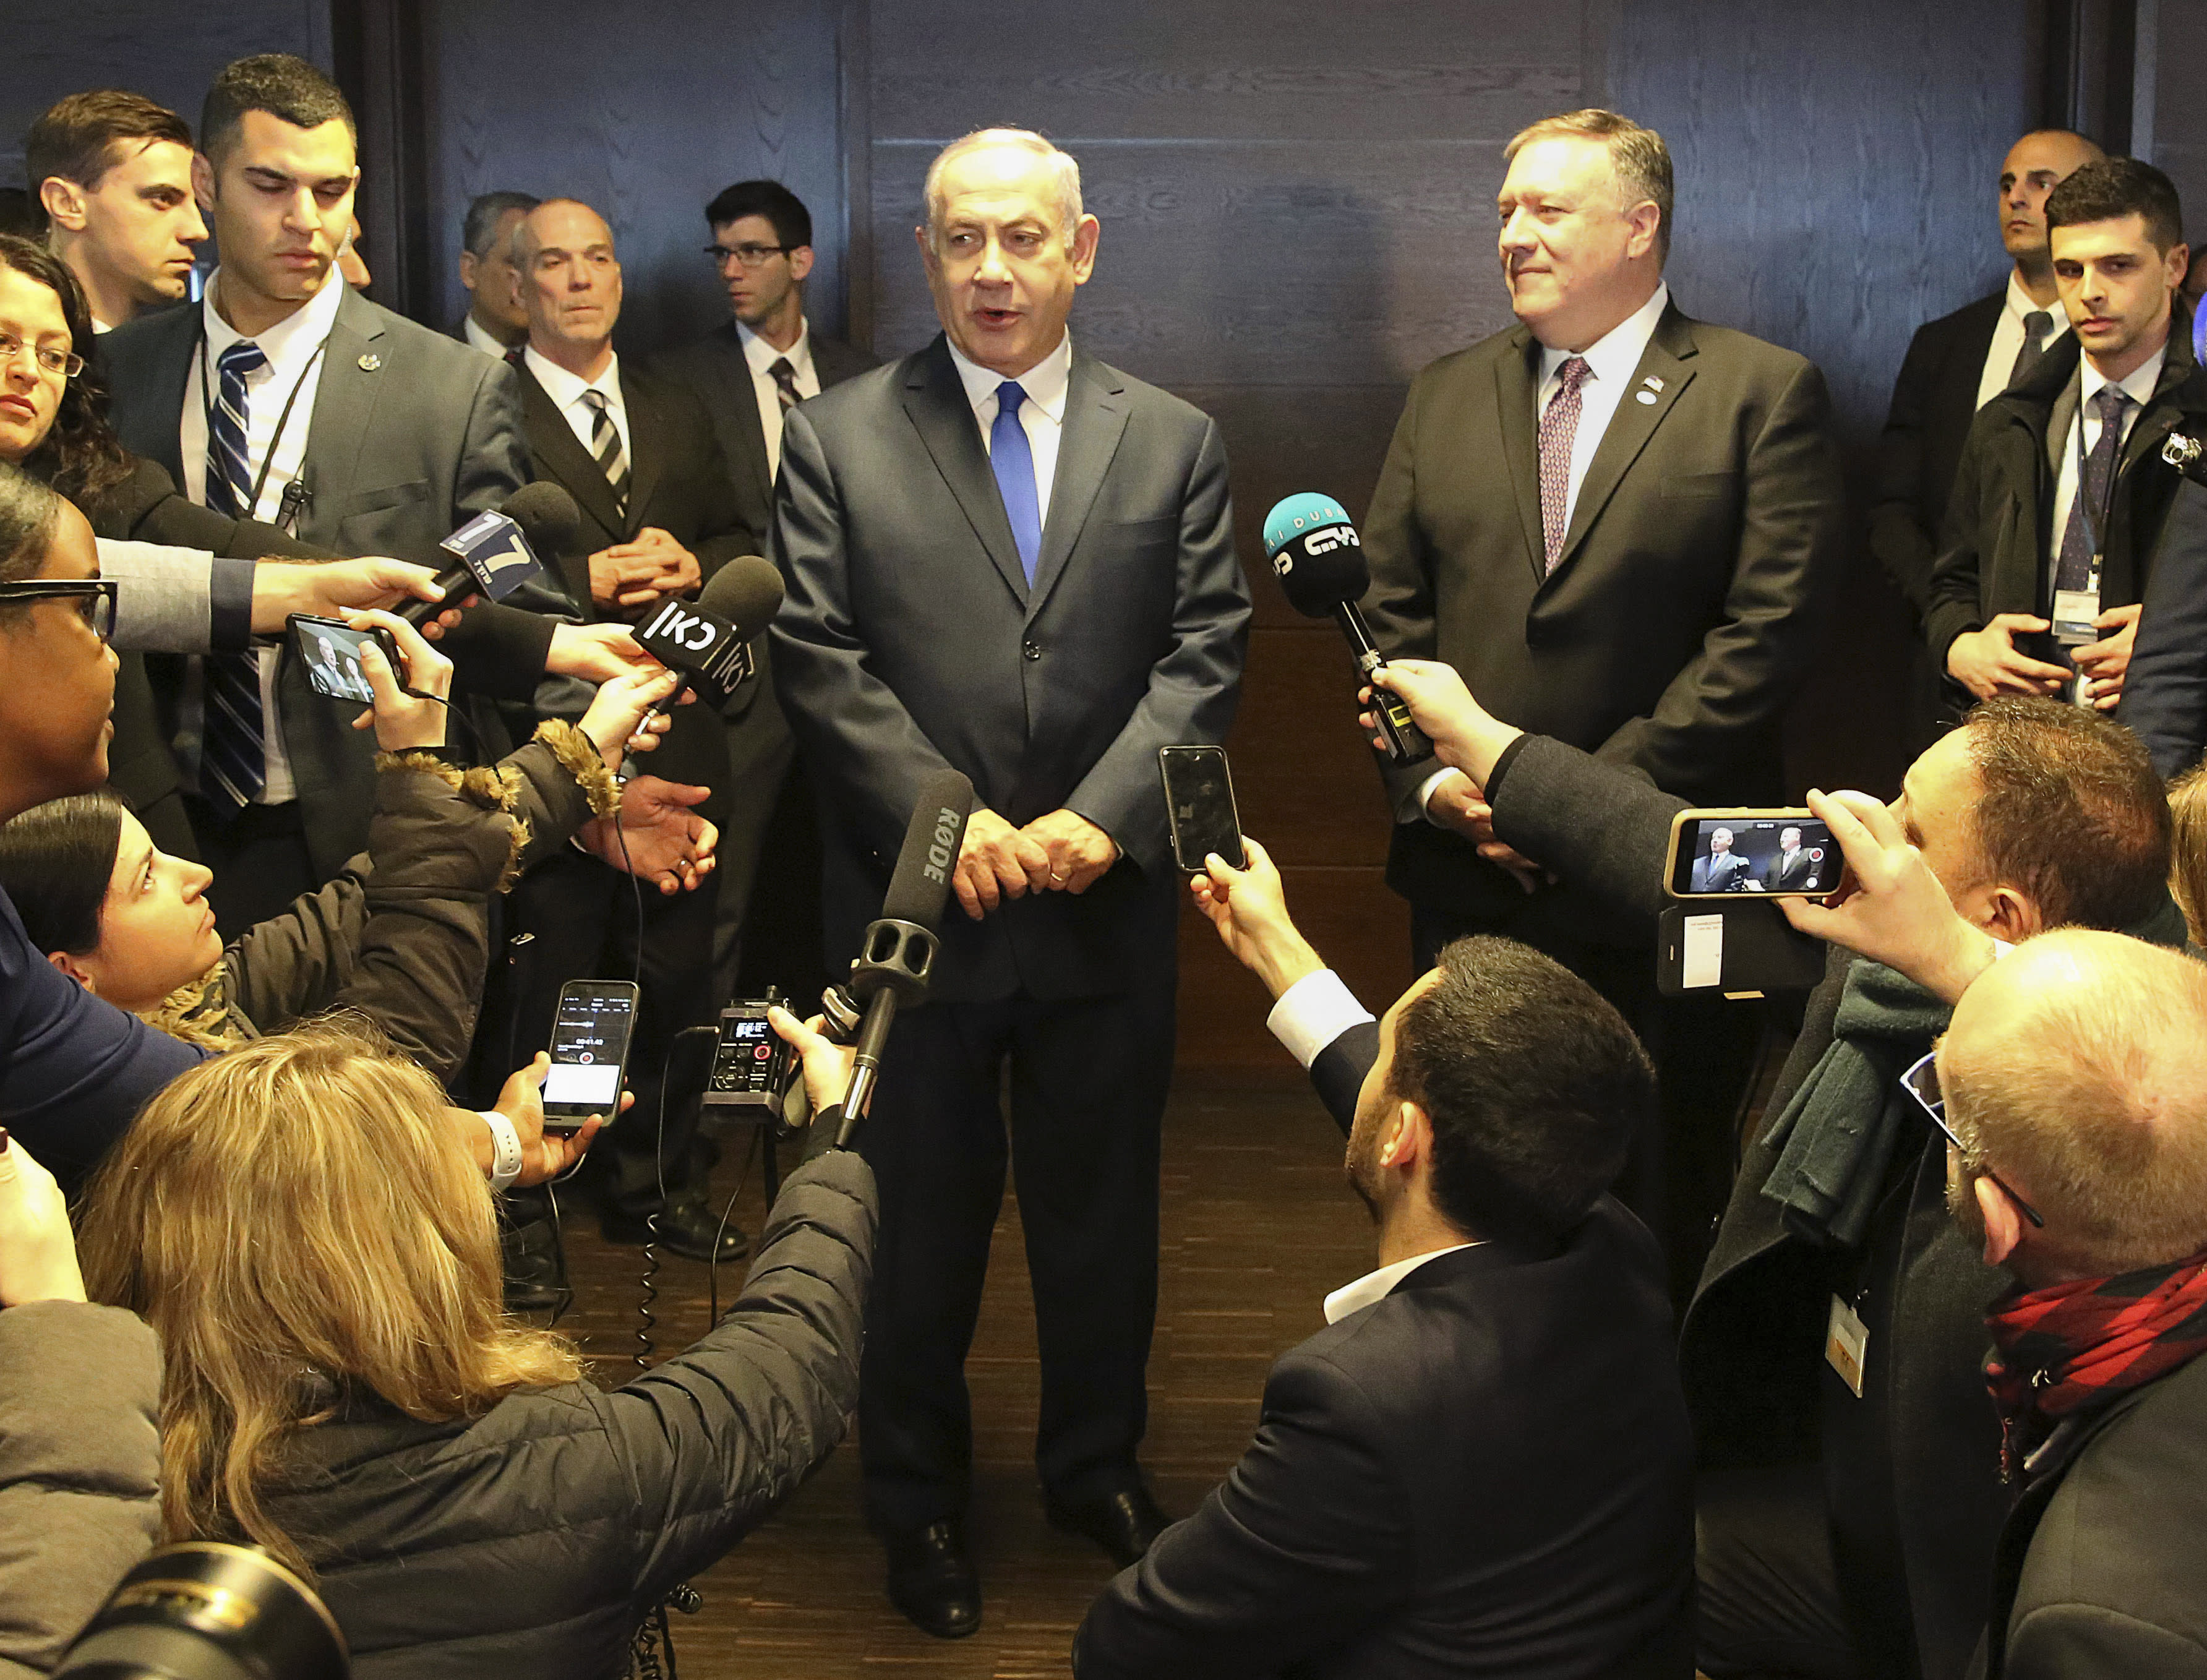 FILE - In this Thursday, Feb. 14, 2019 file photo, Israeli Prime Minister Benjamin Netanyahu, center left, and US Secretary of State Mike Pompeo, center right, address journalists on the sidelines of an international conference on the Middle East in Warsaw, Poland. An off-hand comment by Netanyahu in Warsaw about Poland and the Holocaust looks to overshadow a summit of central European leaders this week in Israel. Poland's abrupt decision Sunday to downgrade its participation in the Visegrad conference suddenly cast a pall gathering. (AP Photo/Czarek Sokolowski, File)